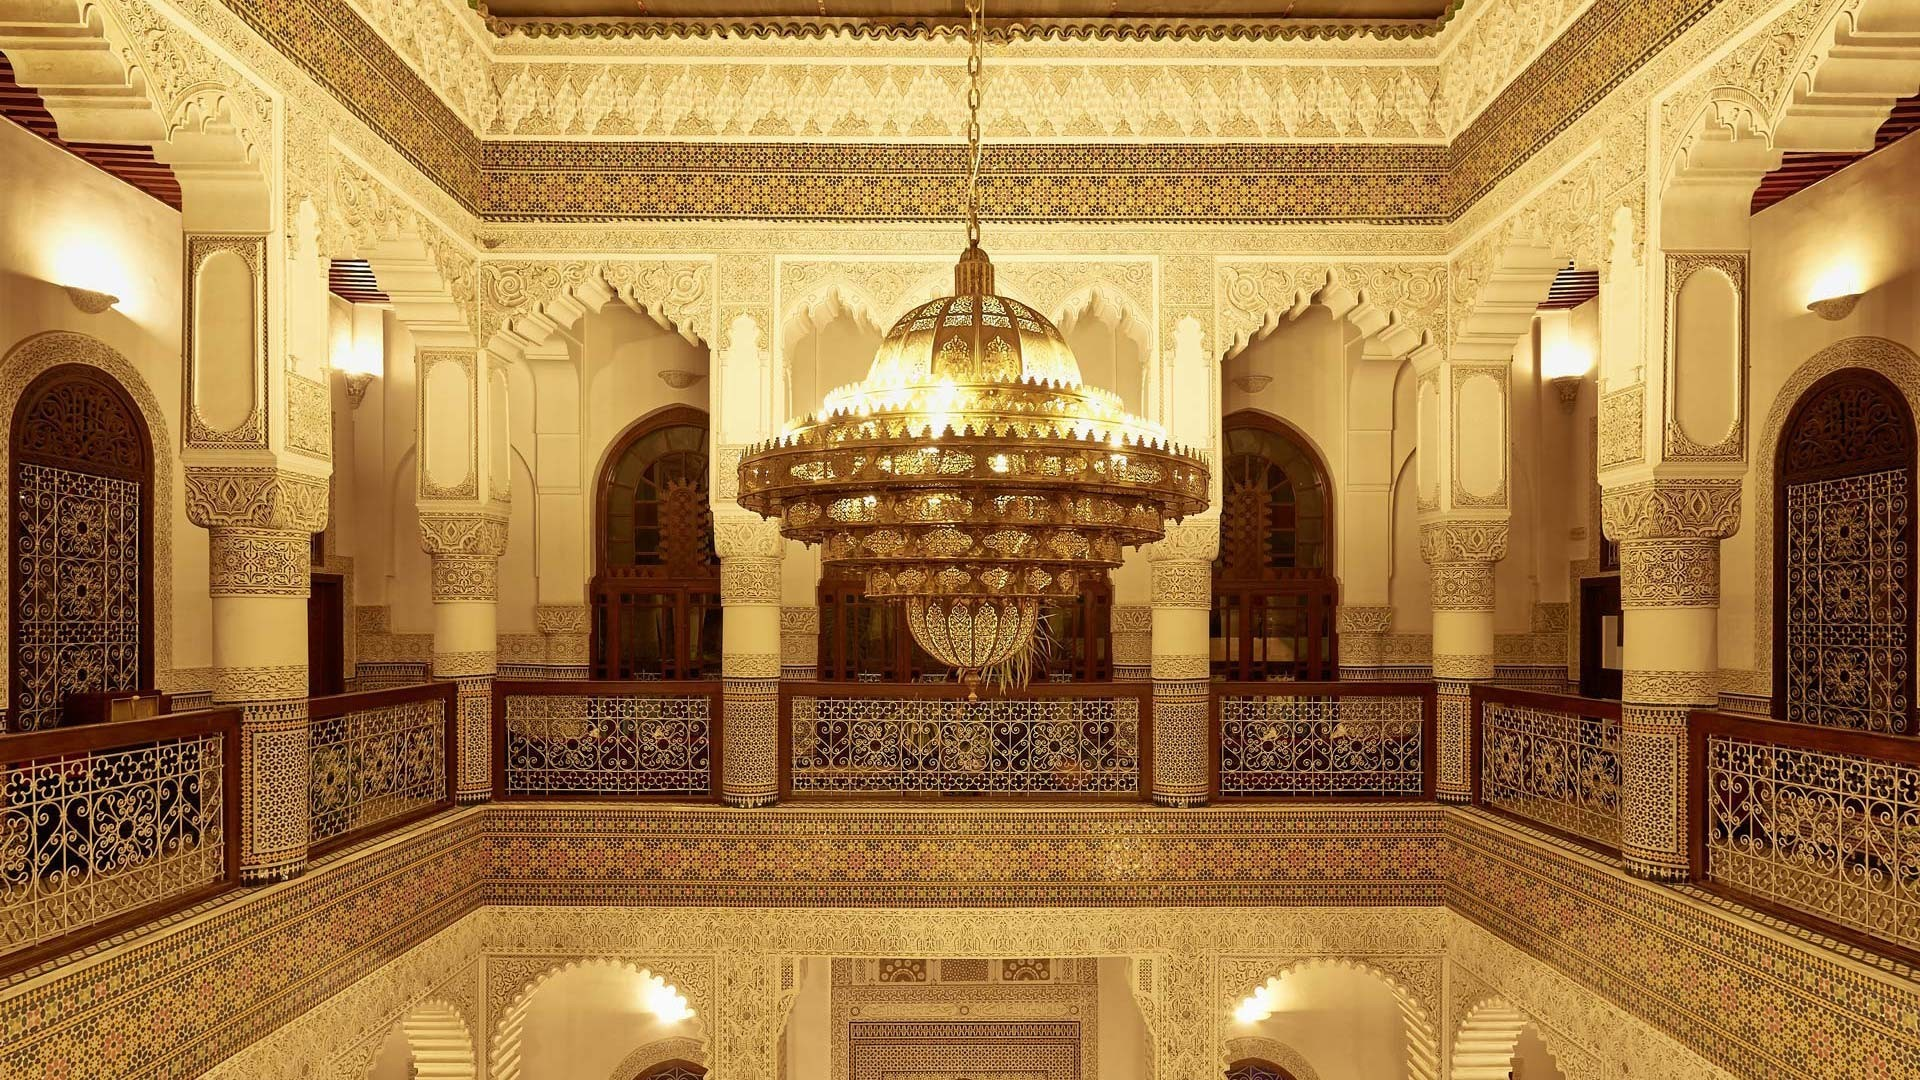 Res: 1920x1080, Riad Fes Morocco Wallpaper Chandelier High Definition Amazing Desktop  Wallpapers For Windows Apple Mac Tablet Download Free